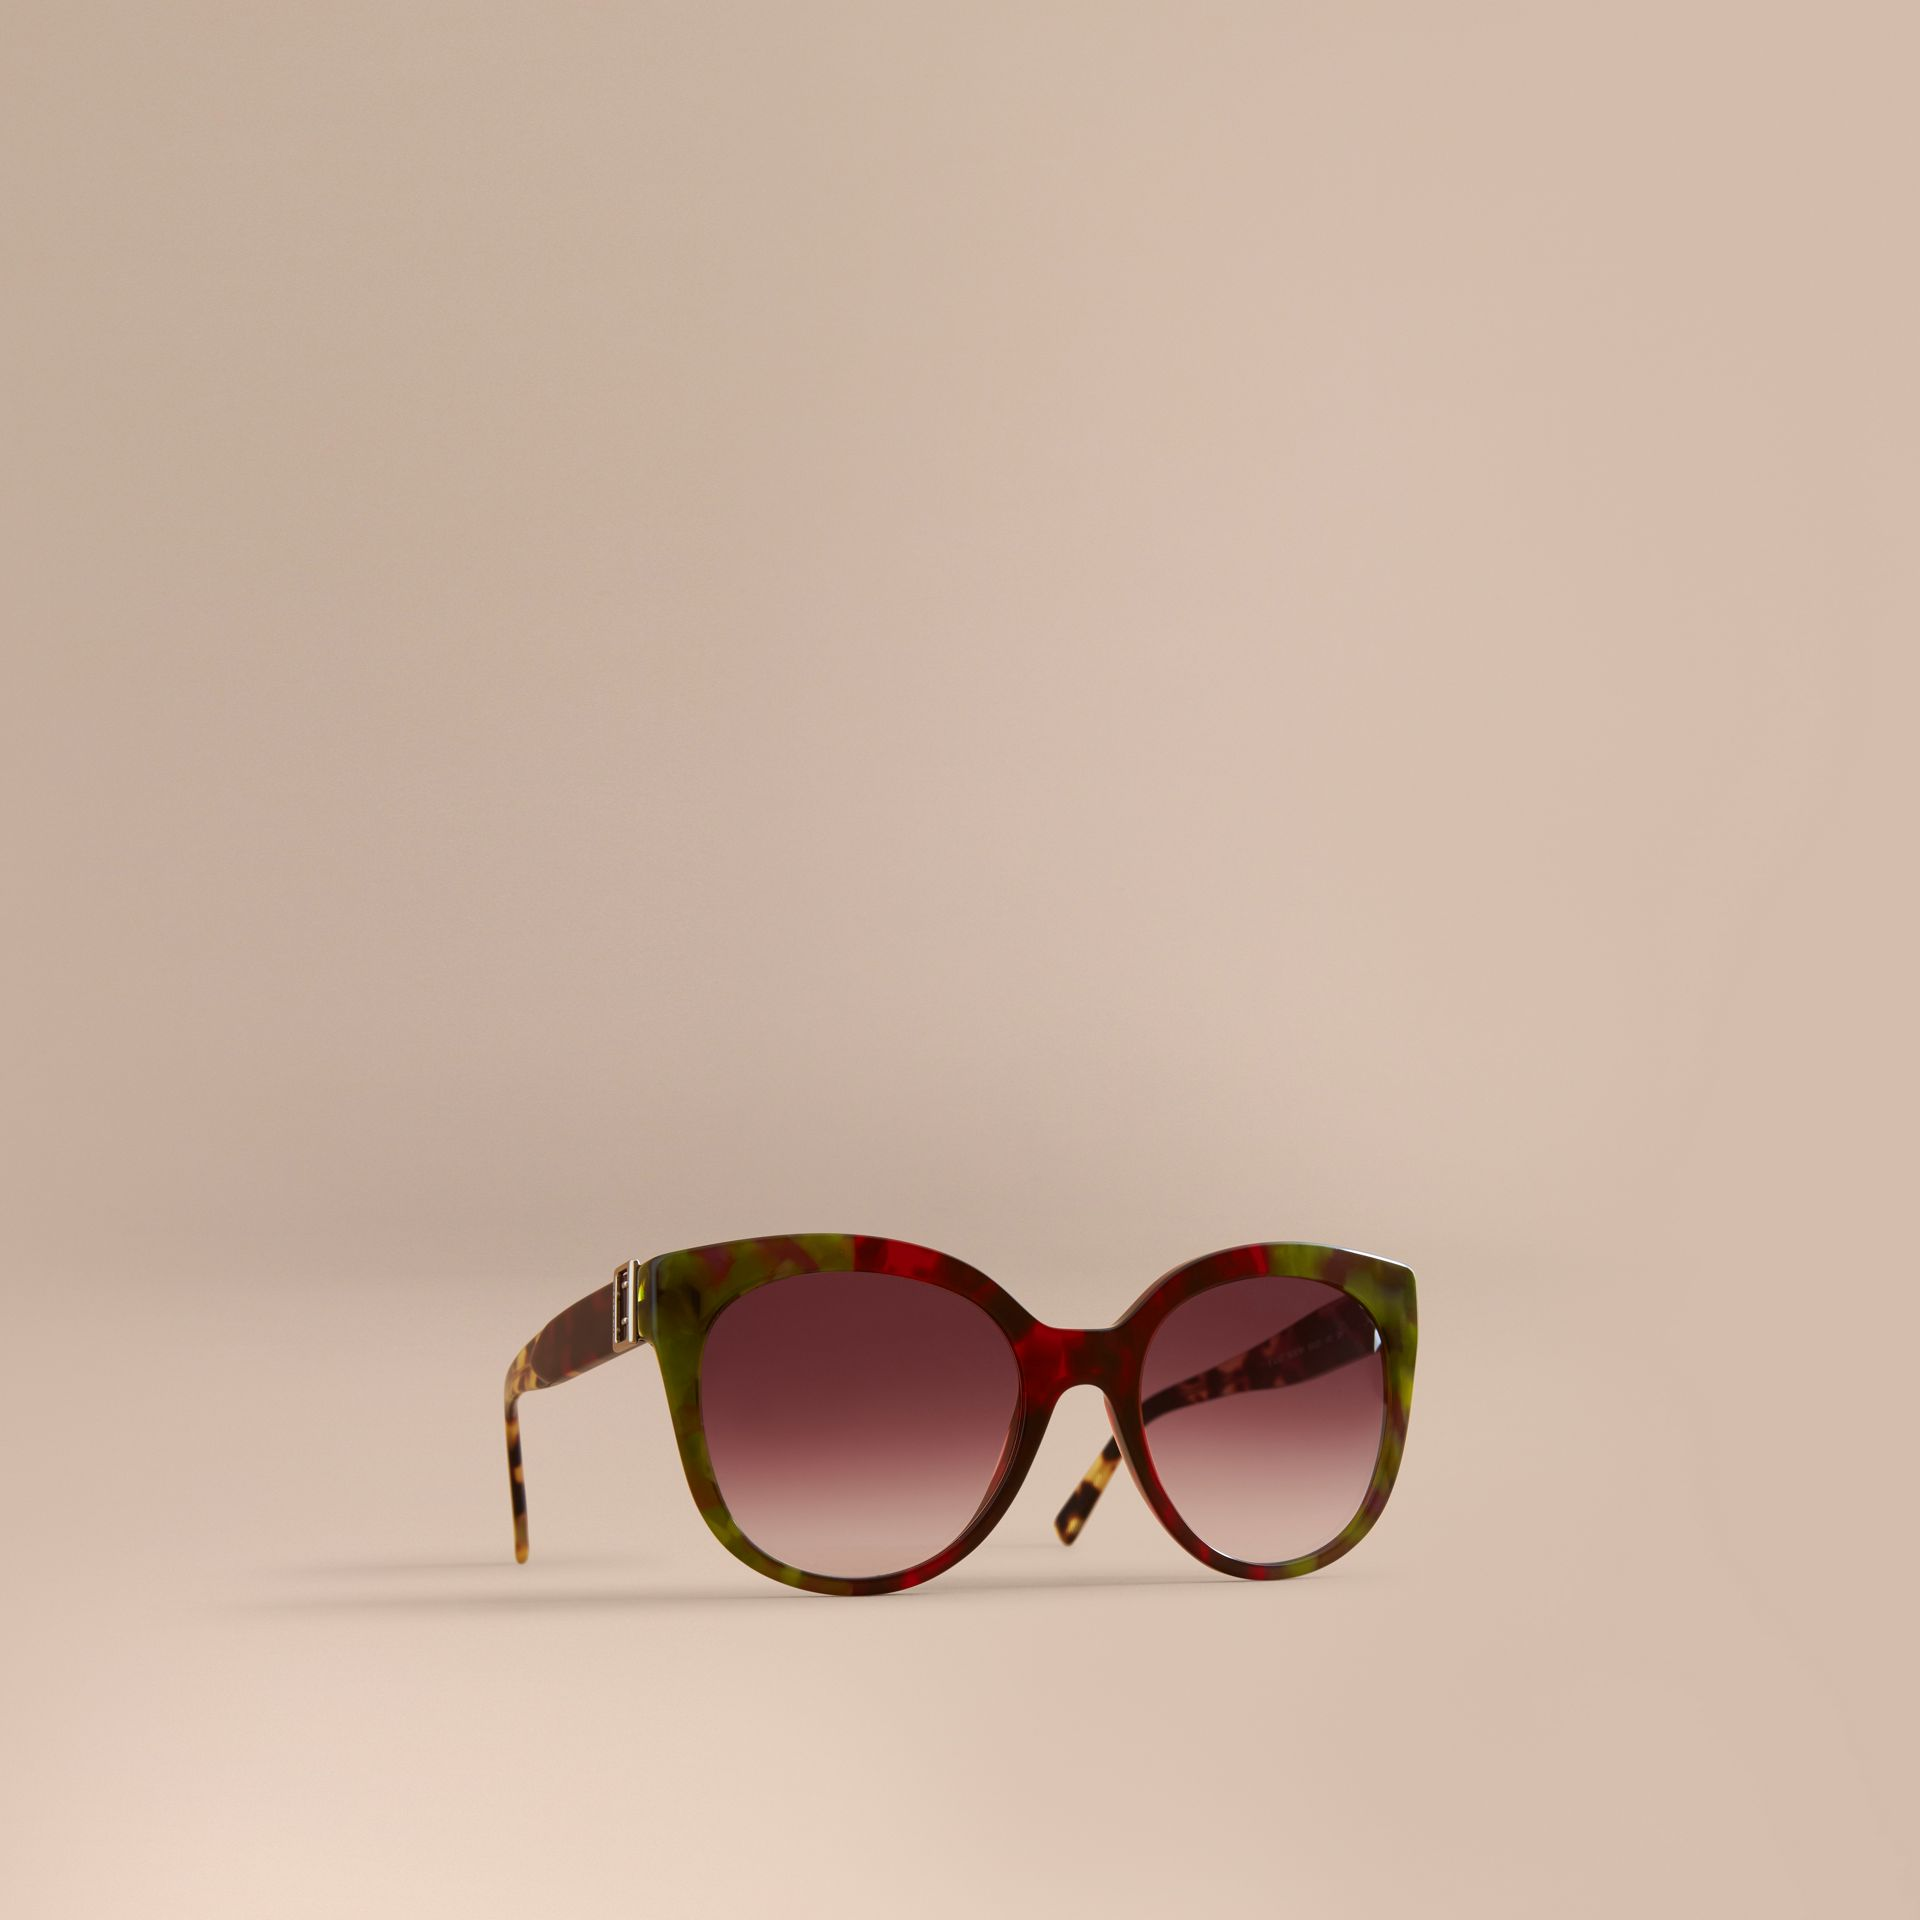 Buckle Detail Cat-eye Frame Sunglasses in Cardinal Red - Women | Burberry - gallery image 0